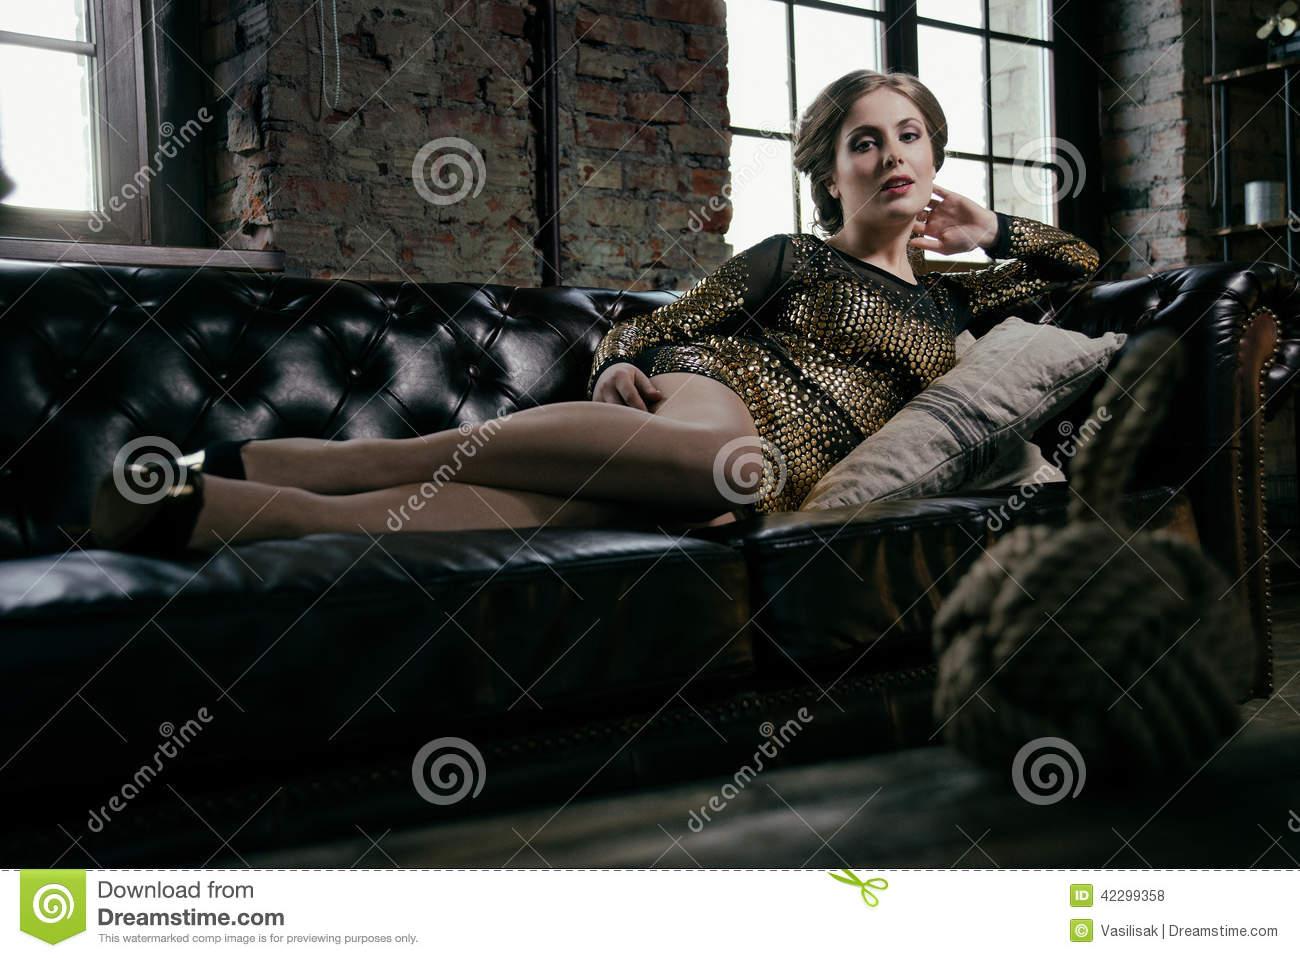 Fashion Glamour Girl Lying On A Black Leather Sofa Stock